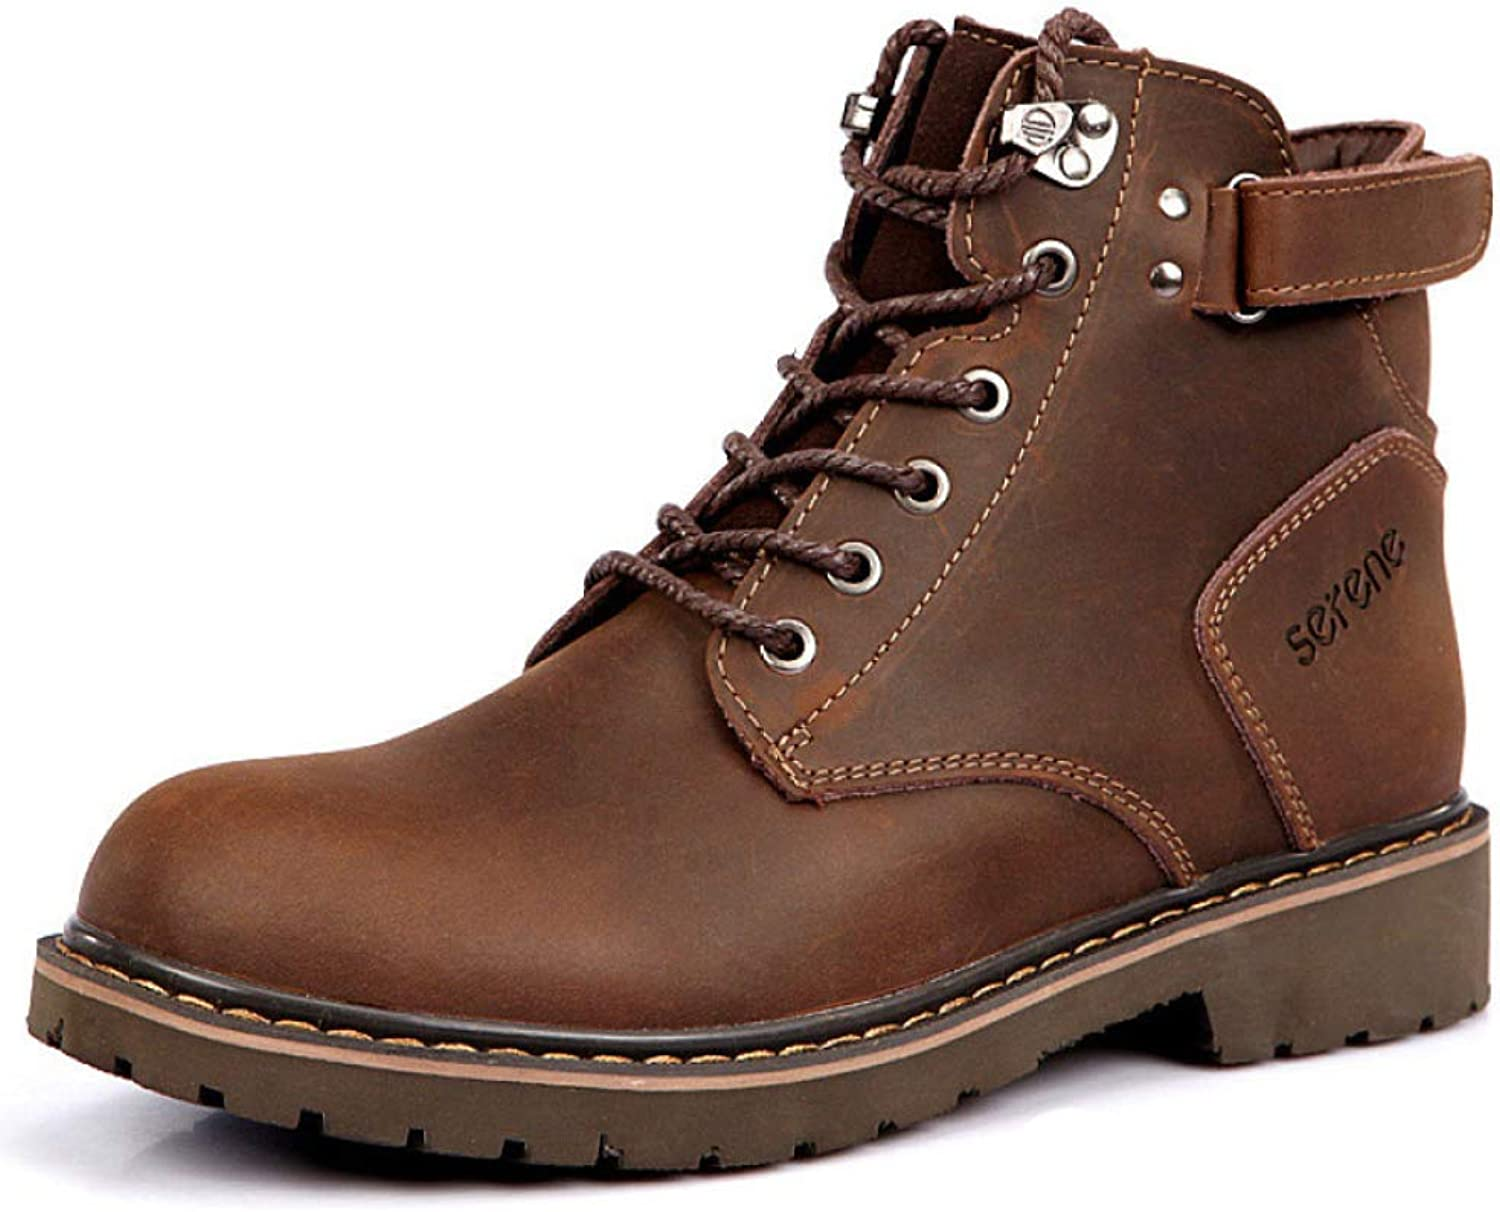 DSFGHE Men's Martin Boots Leather Casual Chukka Ankle Boots Army Tactics Boots Booties Snow Boots High Help Work Boots Lace-up shoes